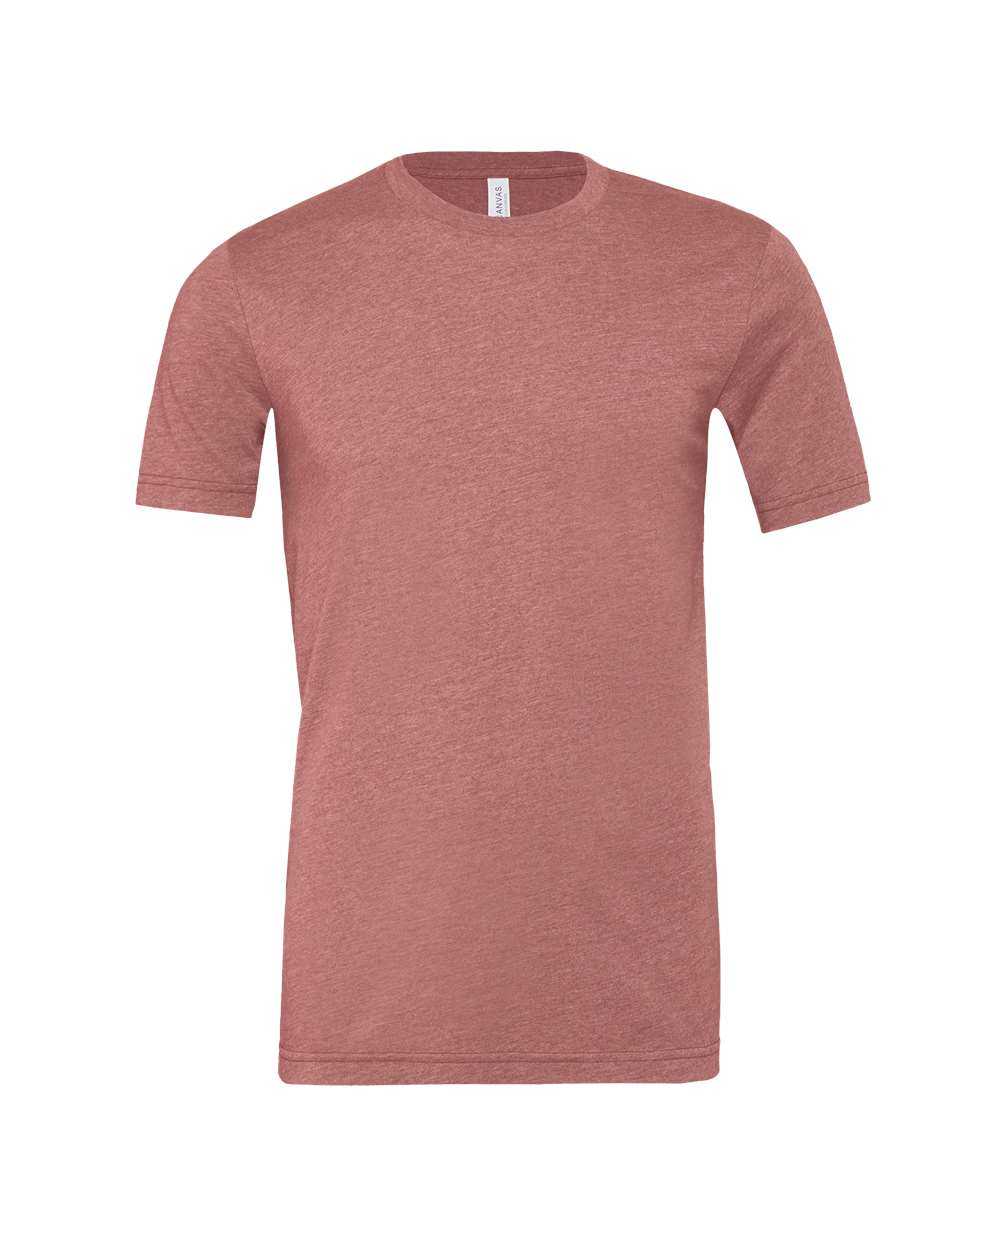 Bella-Canvas-Unisex-Short-Sleeve-Heather-Jersey-T-Shirt-3001c2-up-to-5XL thumbnail 75